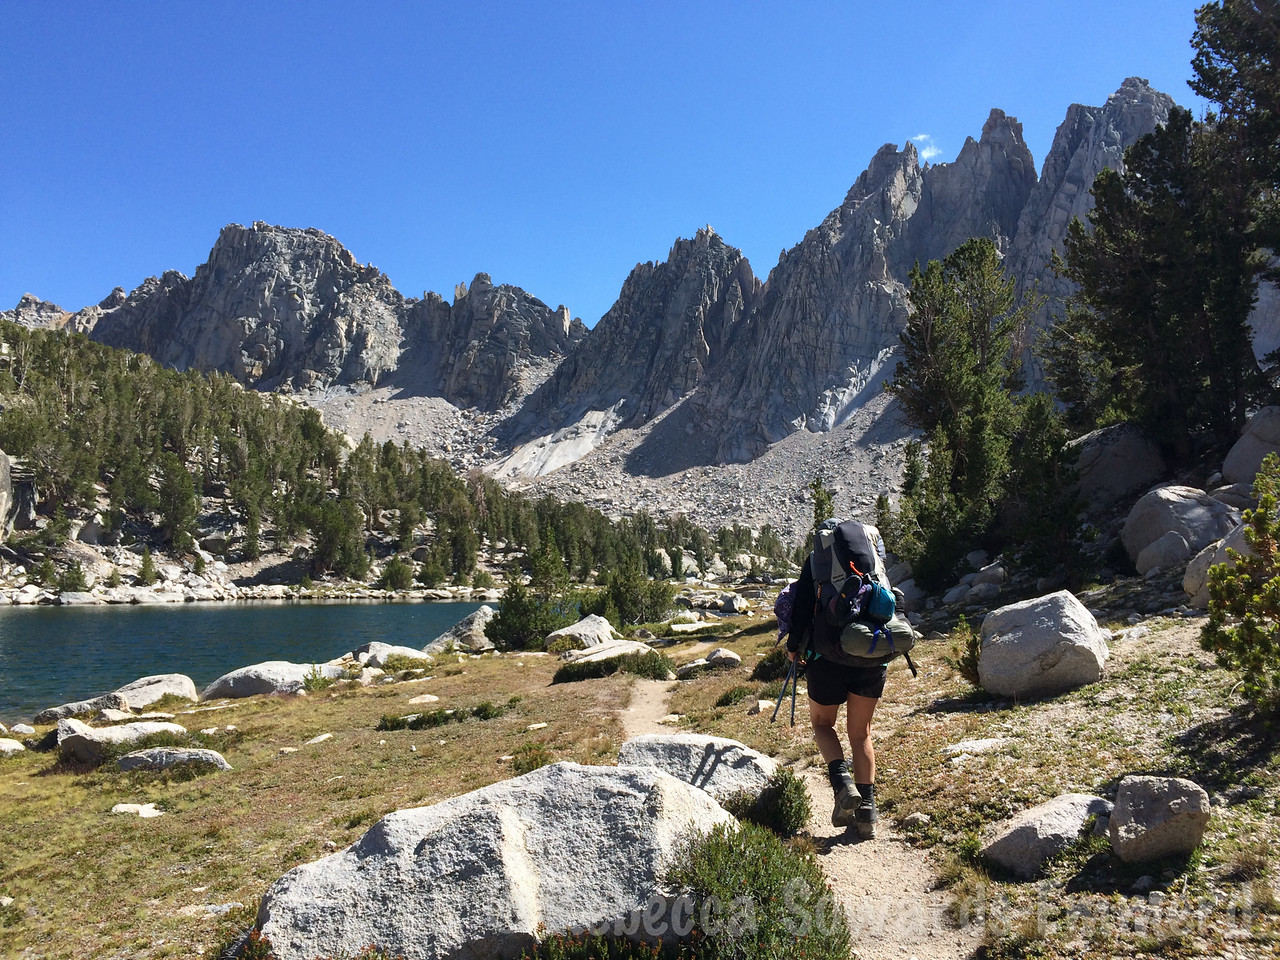 Walking along Kearsarge Lakes, looking for the perfect campsite.